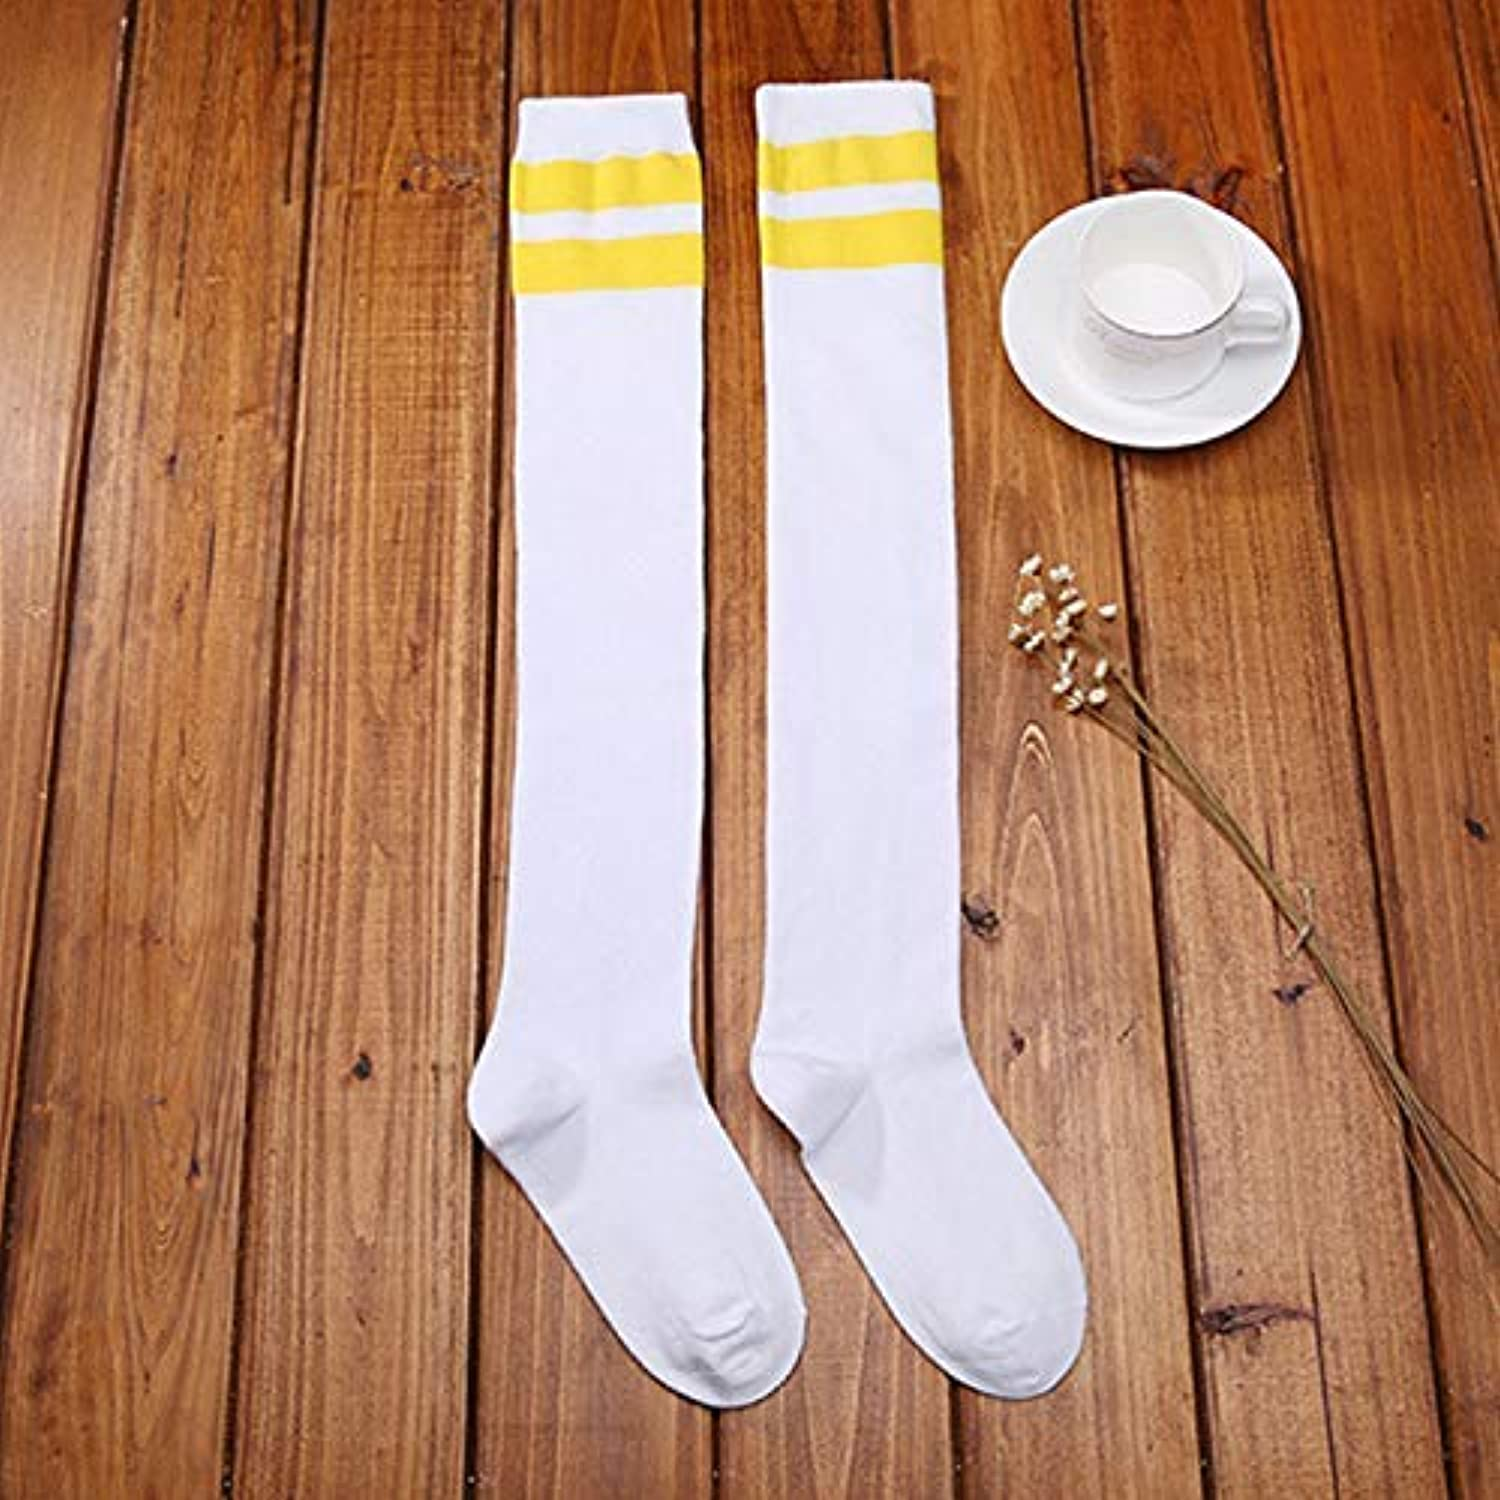 Comfortable Arm Warmer Leg Stocking Home Japanese Spring and Summer Baseball Socks in Stockings Striped Female Cotton Sports Deodorant Students Cycling Running Long Tube Socks (color   Yellow)